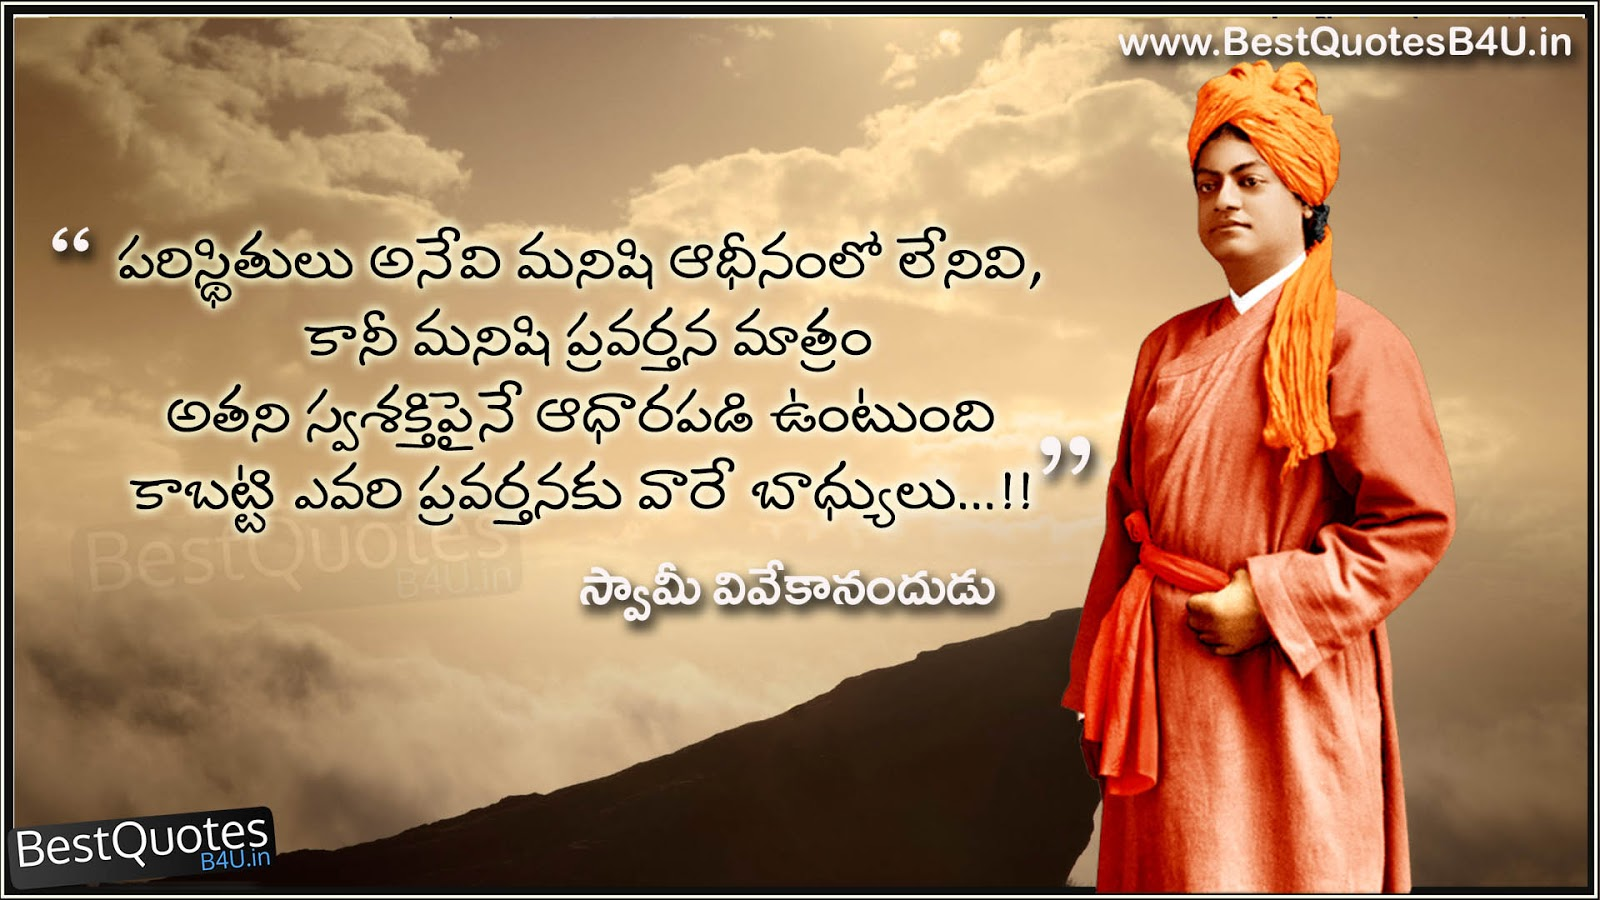 telugu swami vivekananda motivational quotes for youth telugu swami vivekananda motivational quotes for youth